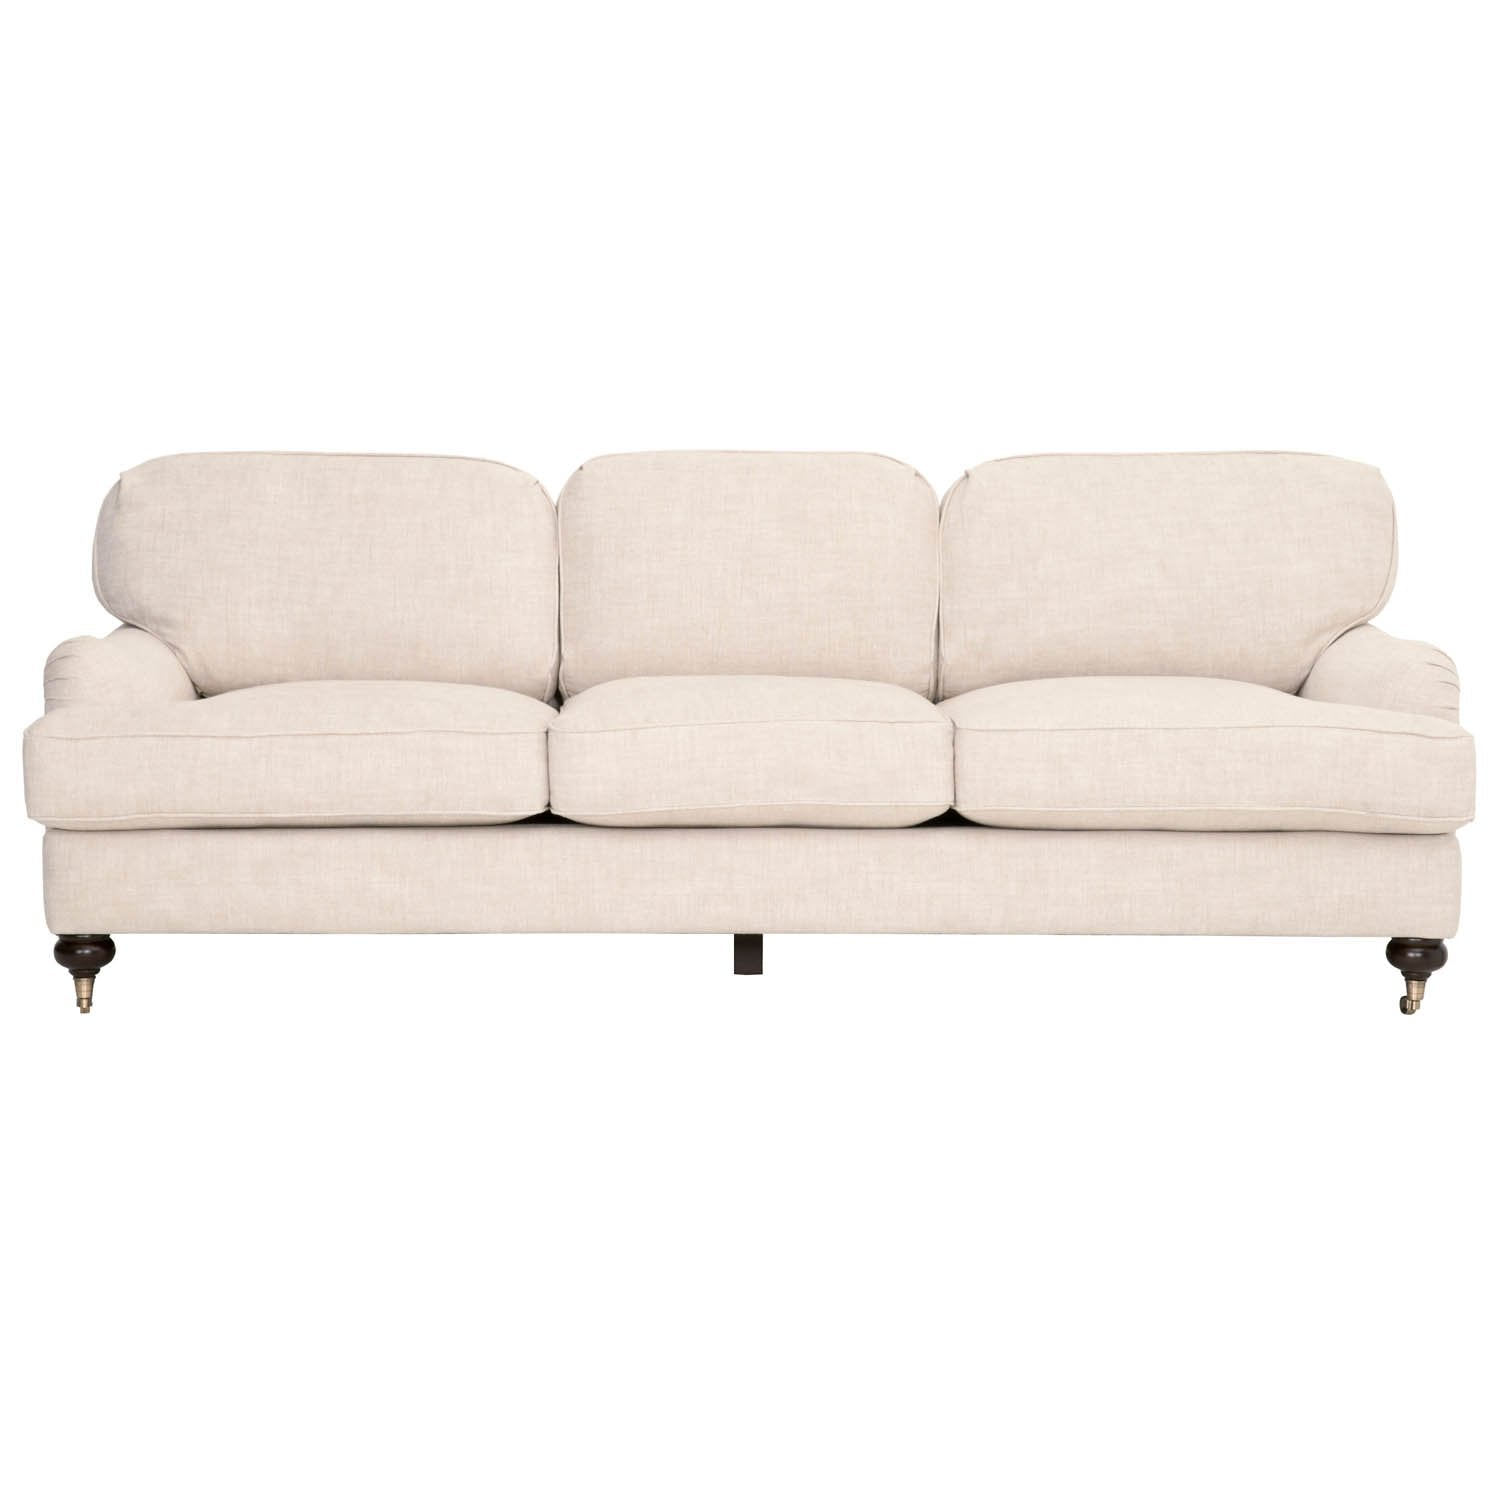 "Charles 93"" Sofa in Bisque French Linen"